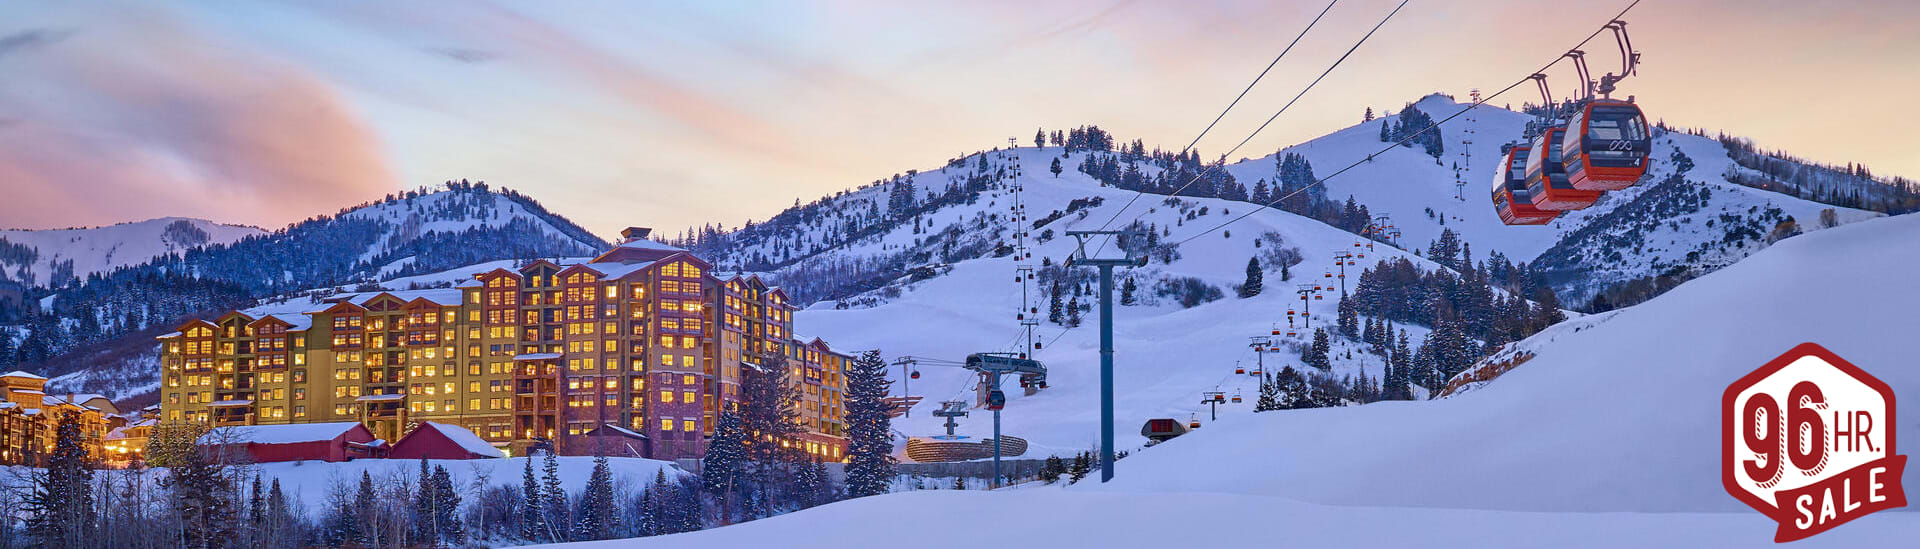 The Grand Summit at Park City